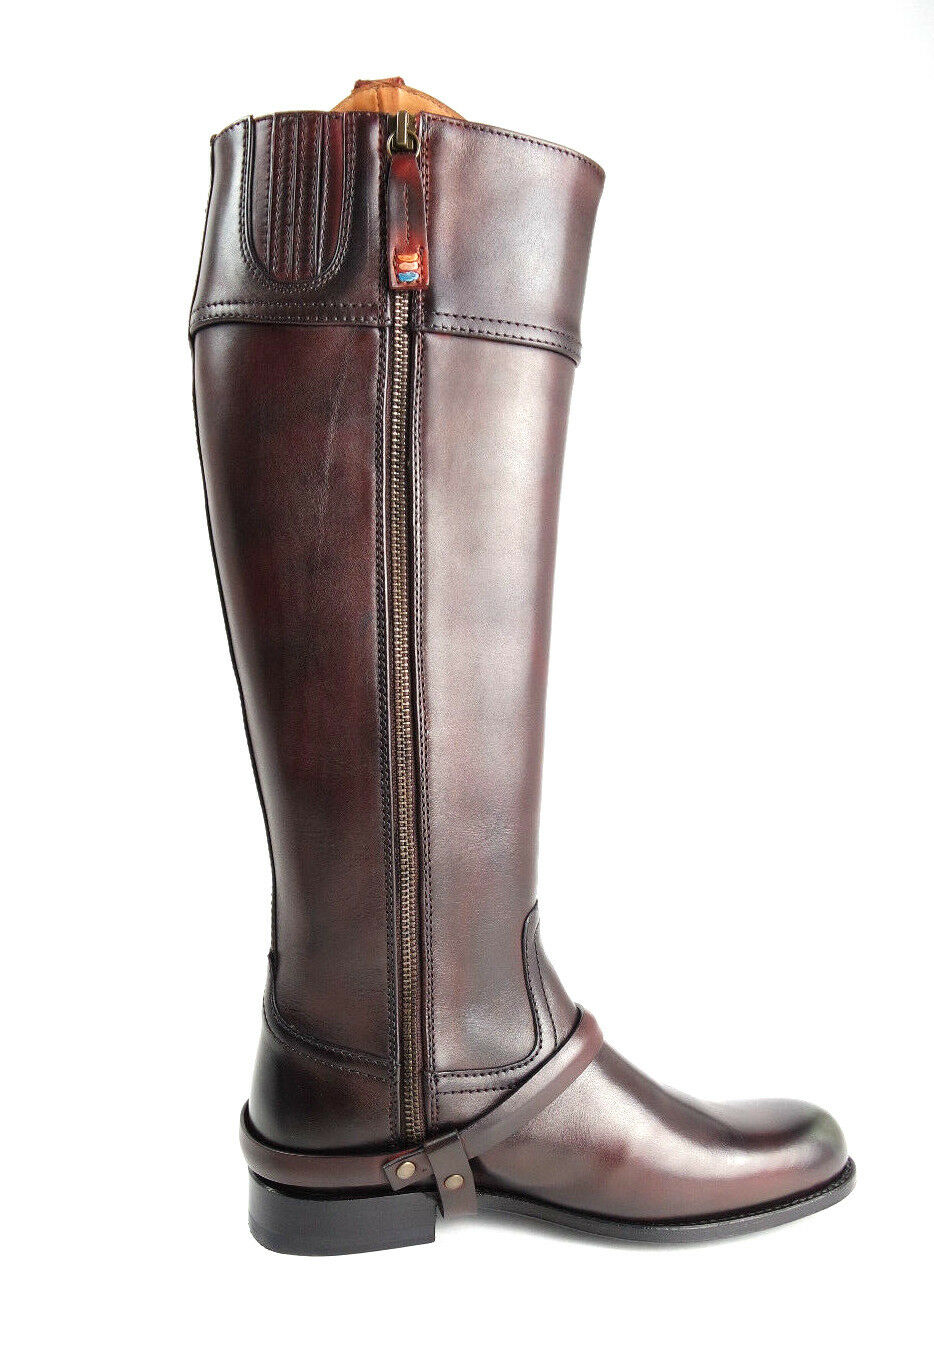 1ee7befa51d Ariat Women's two24 Pamplona Pamplona Pamplona Boot Size 7 color ...